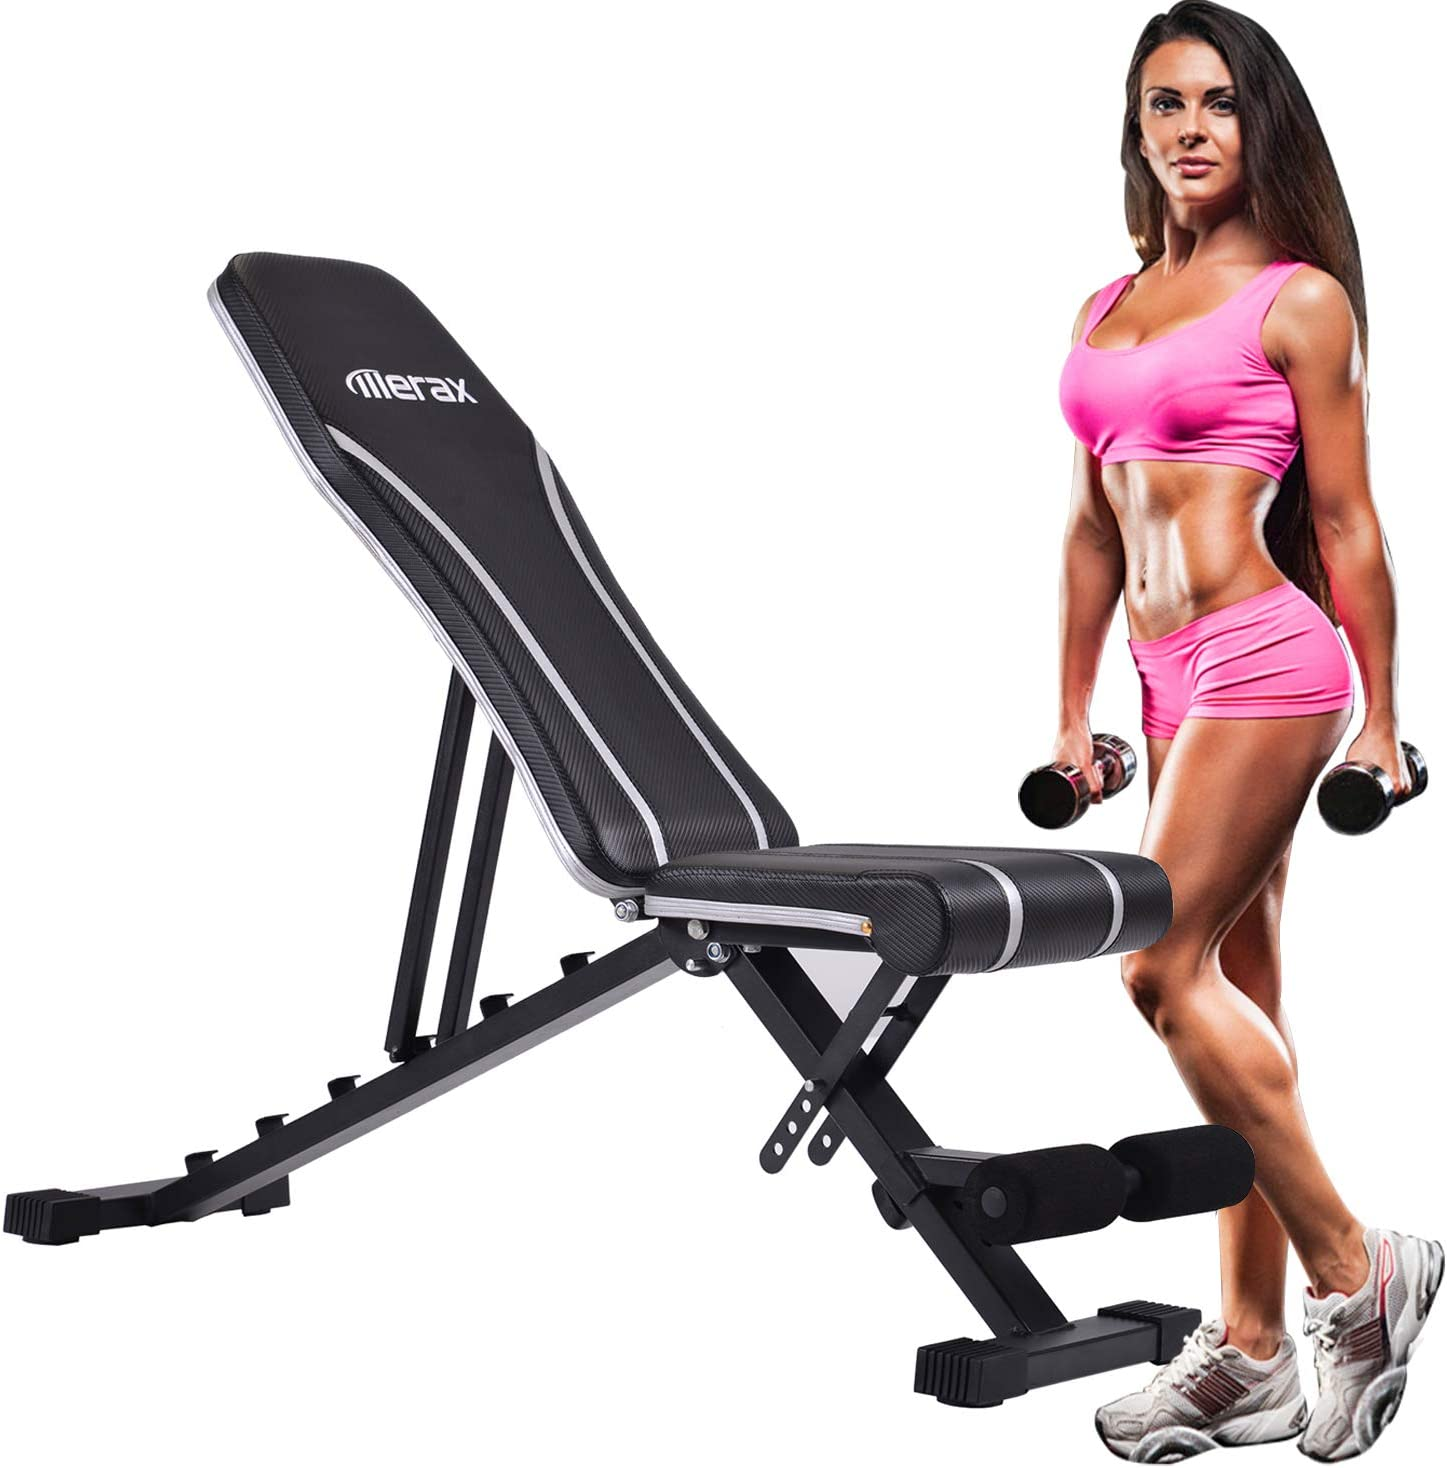 Norcia Adjustable Weight Bench, Foldable Heavy-Duty Workout Bench, Utility Exercise Bench Suitable for Dumbbell Bench Press, Sit-Ups, Shoulder Press, Dips, Etc